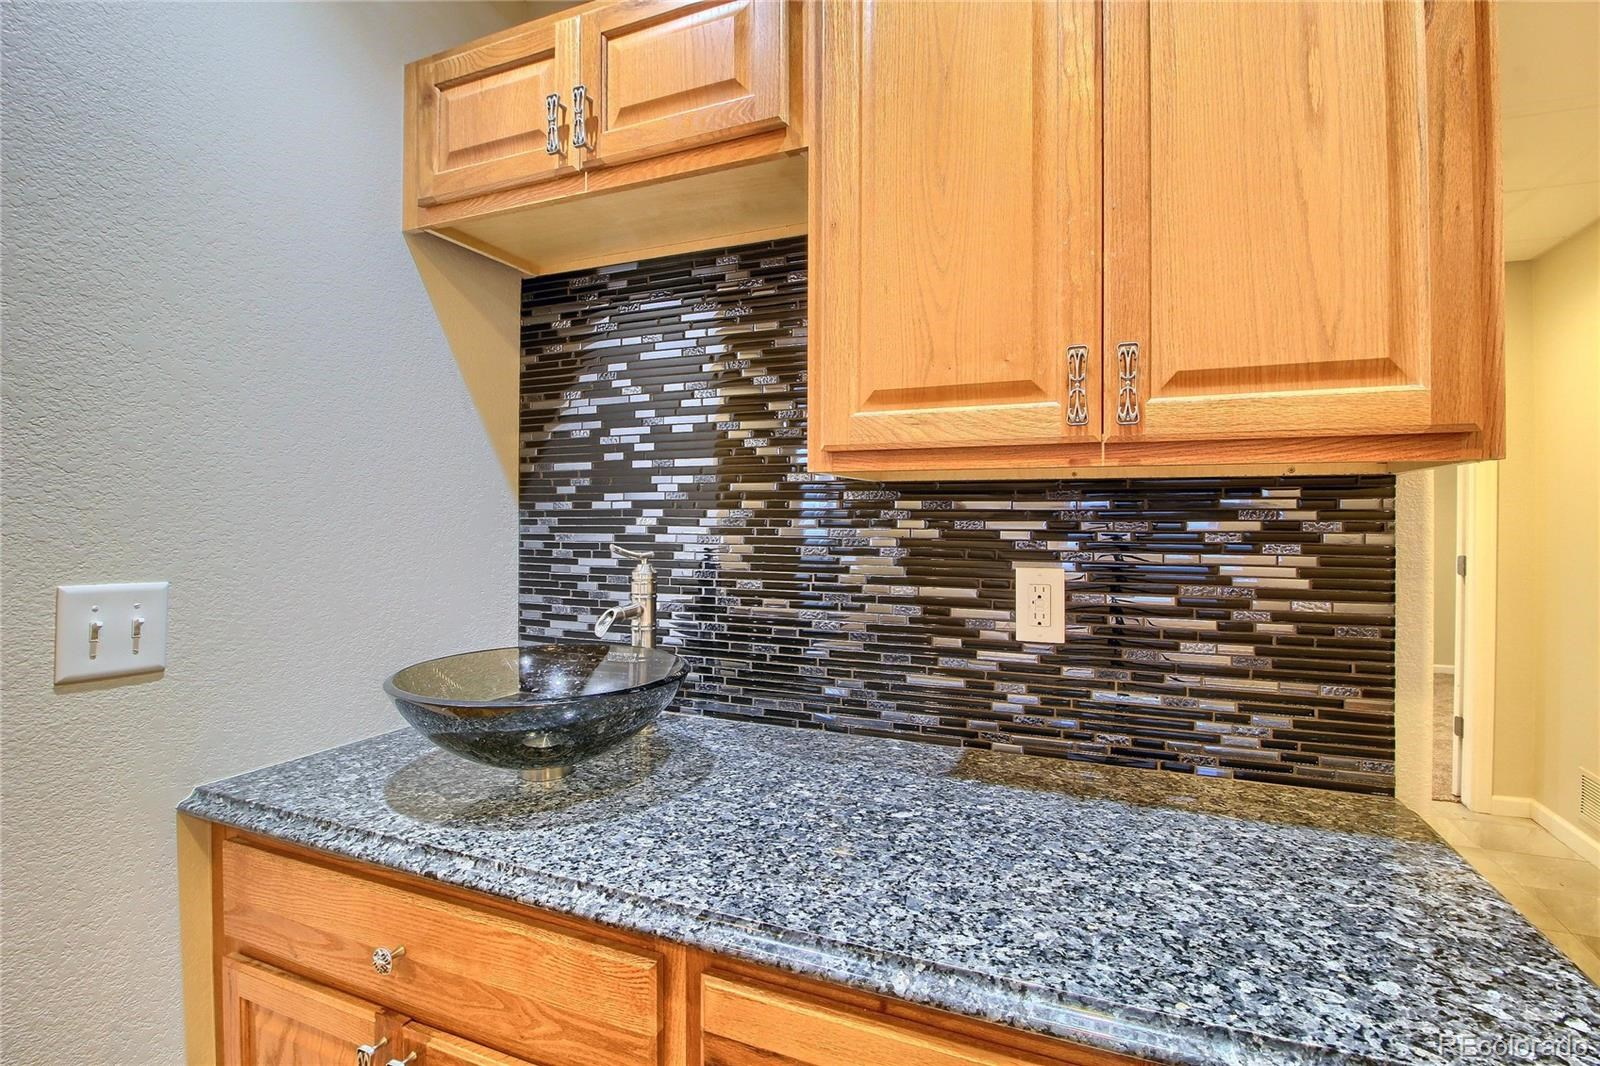 MLS# 8597792 - 30 - 13787 Stone Circle #101, Broomfield, CO 80023